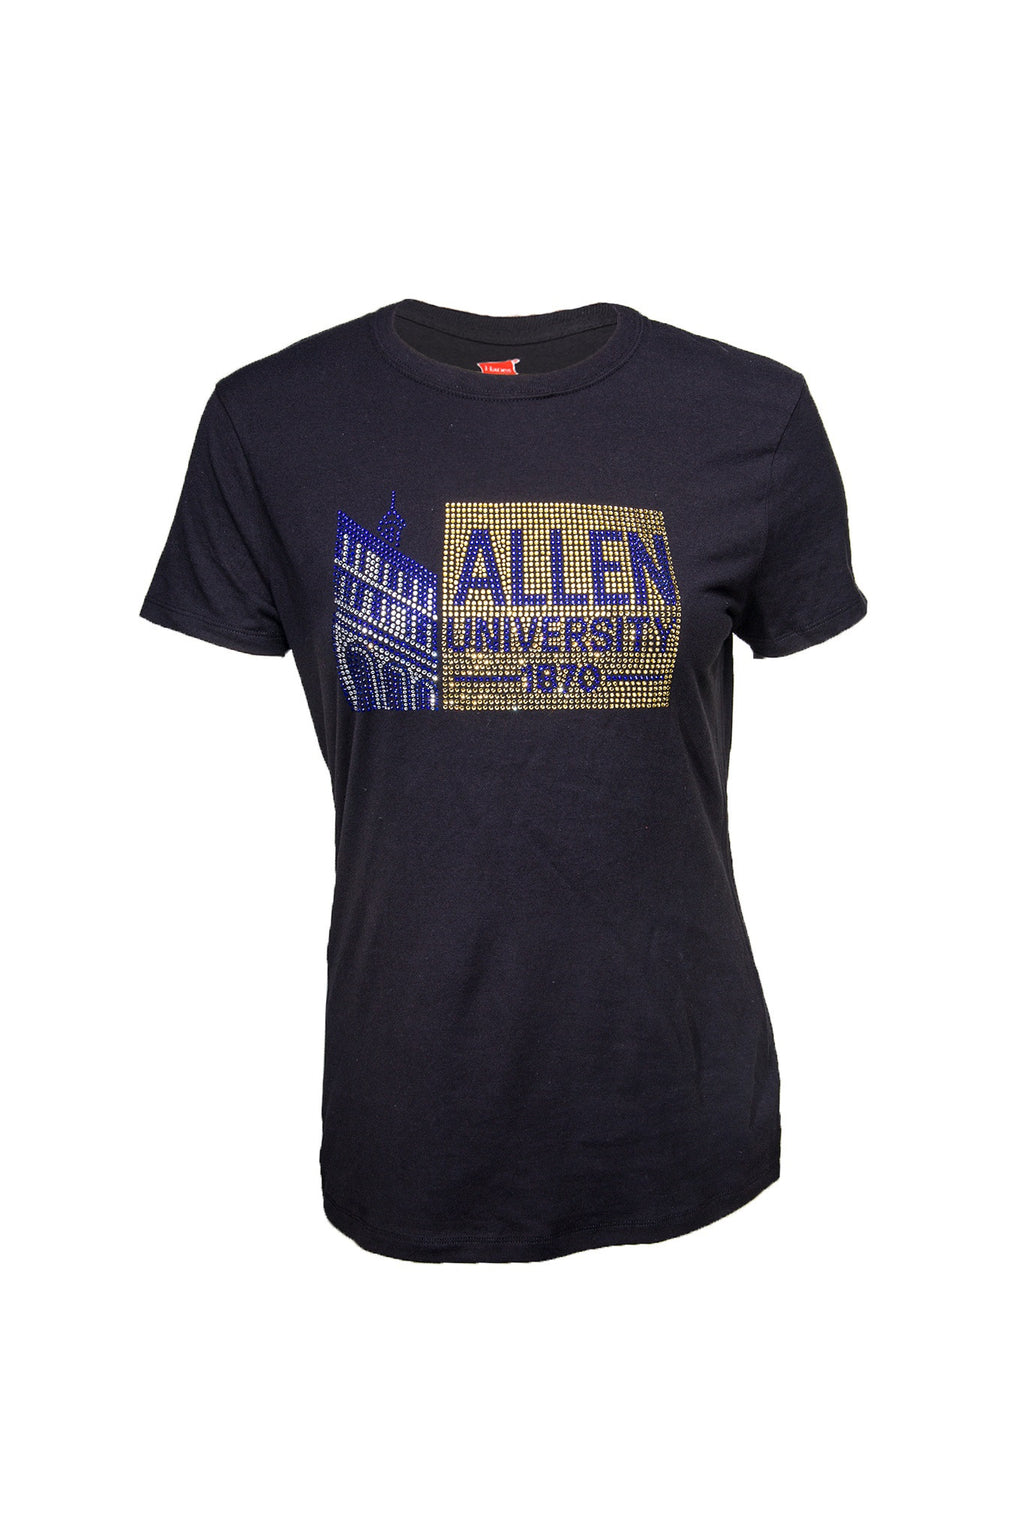 Allen University Zeta Phi Beta Bling Shirt